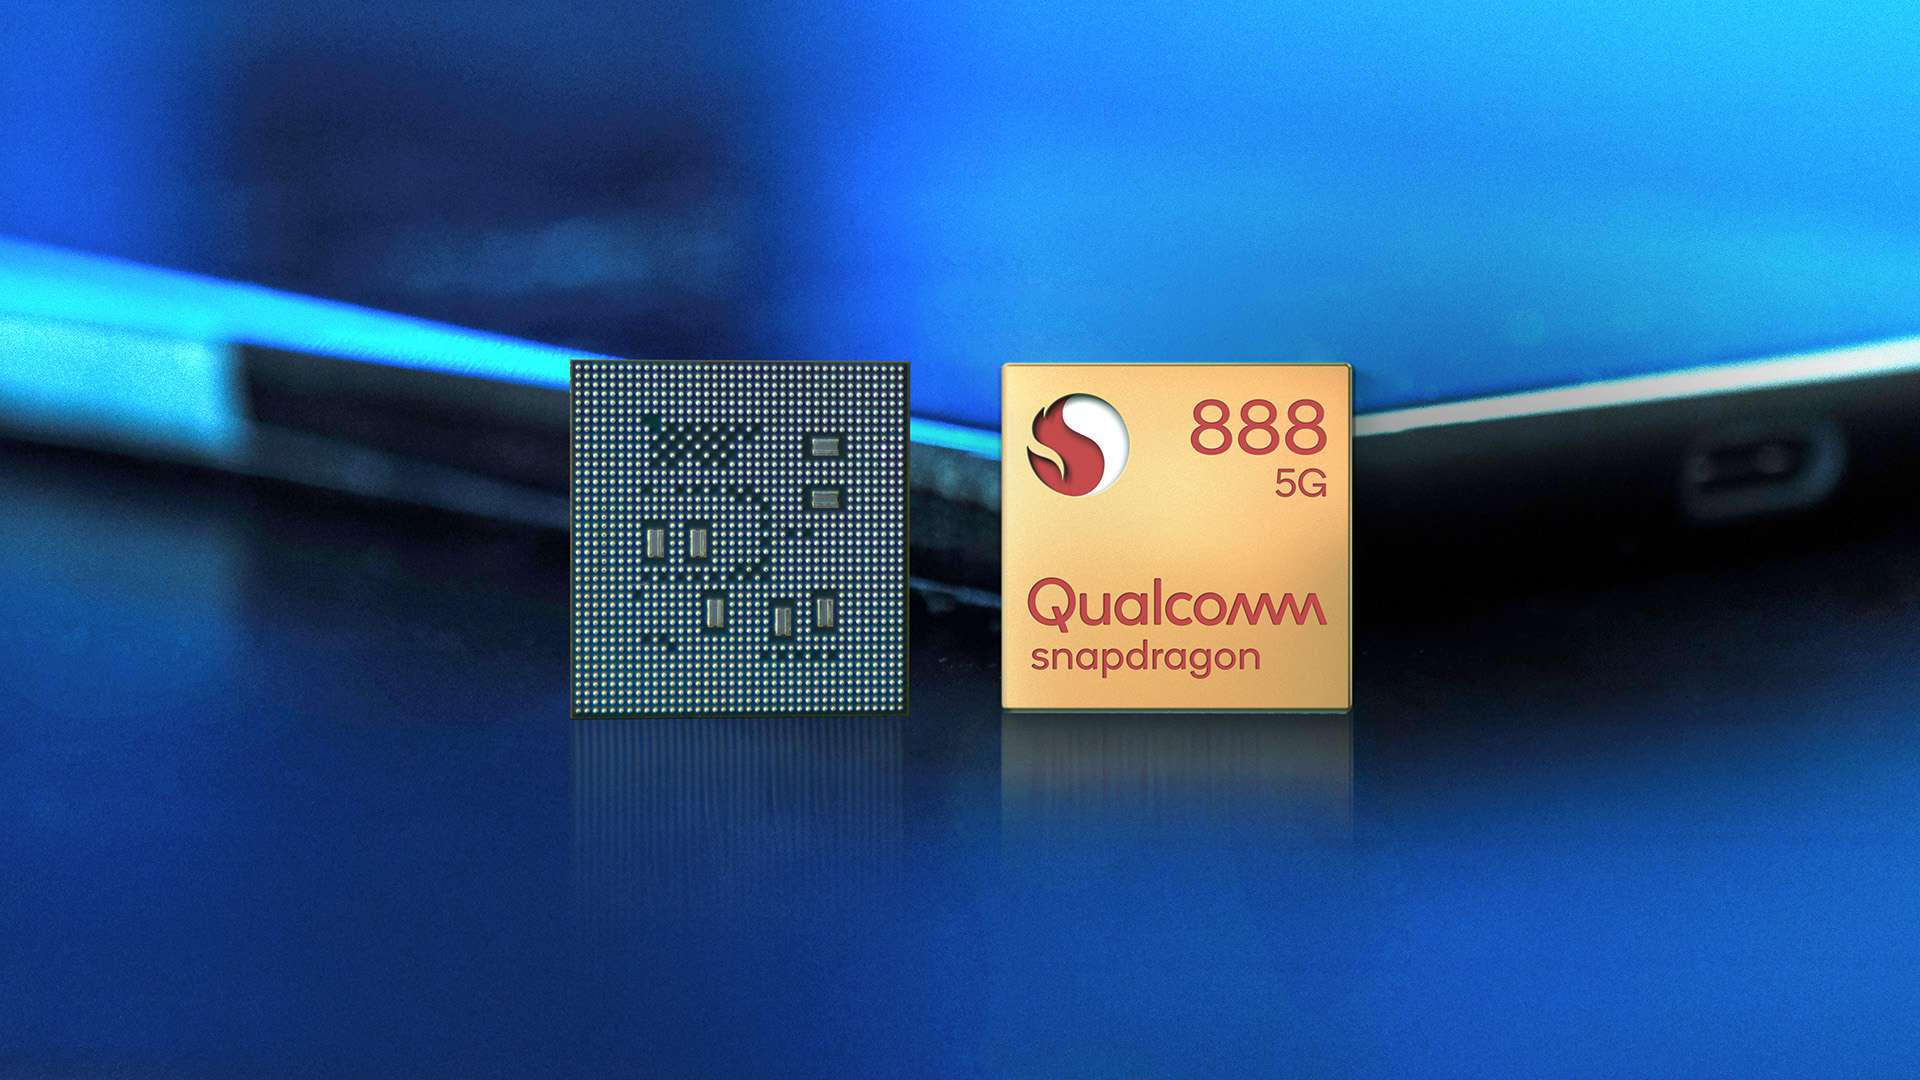 Qualcomm's Snapdragon 888 5G Chip front and back